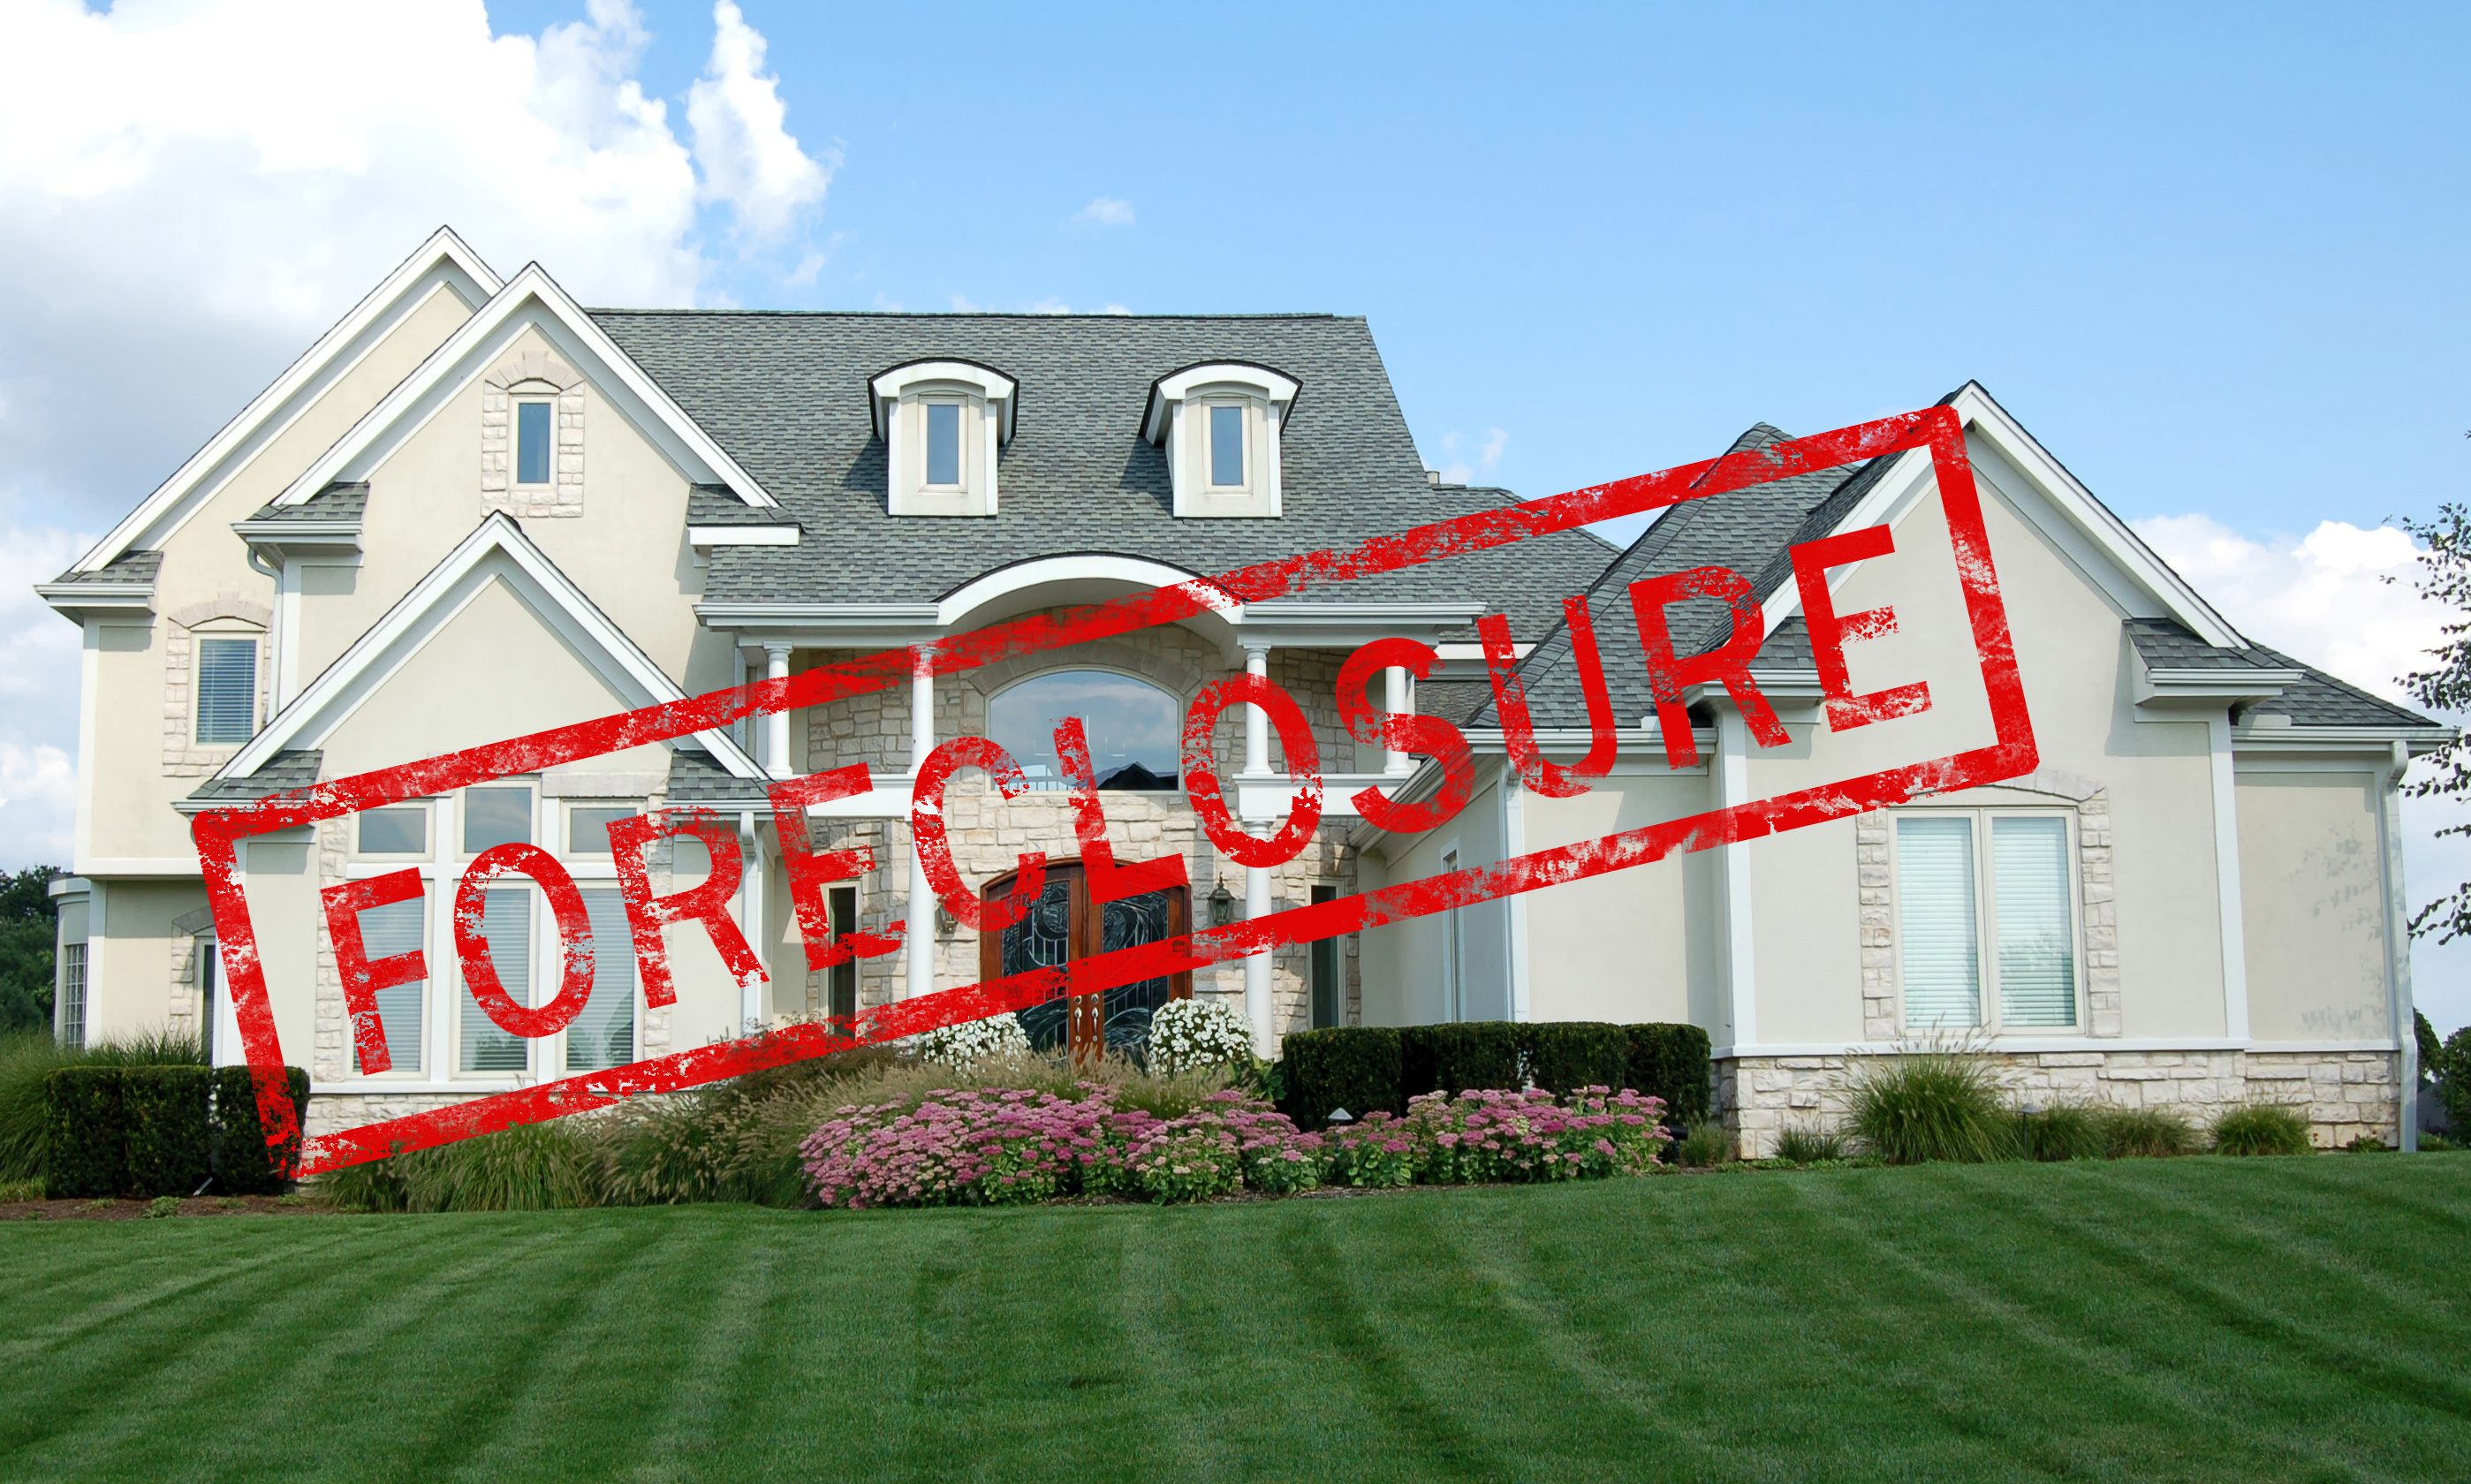 Call 4720 Enterprises, Inc. when you need appraisals on El Paso foreclosures